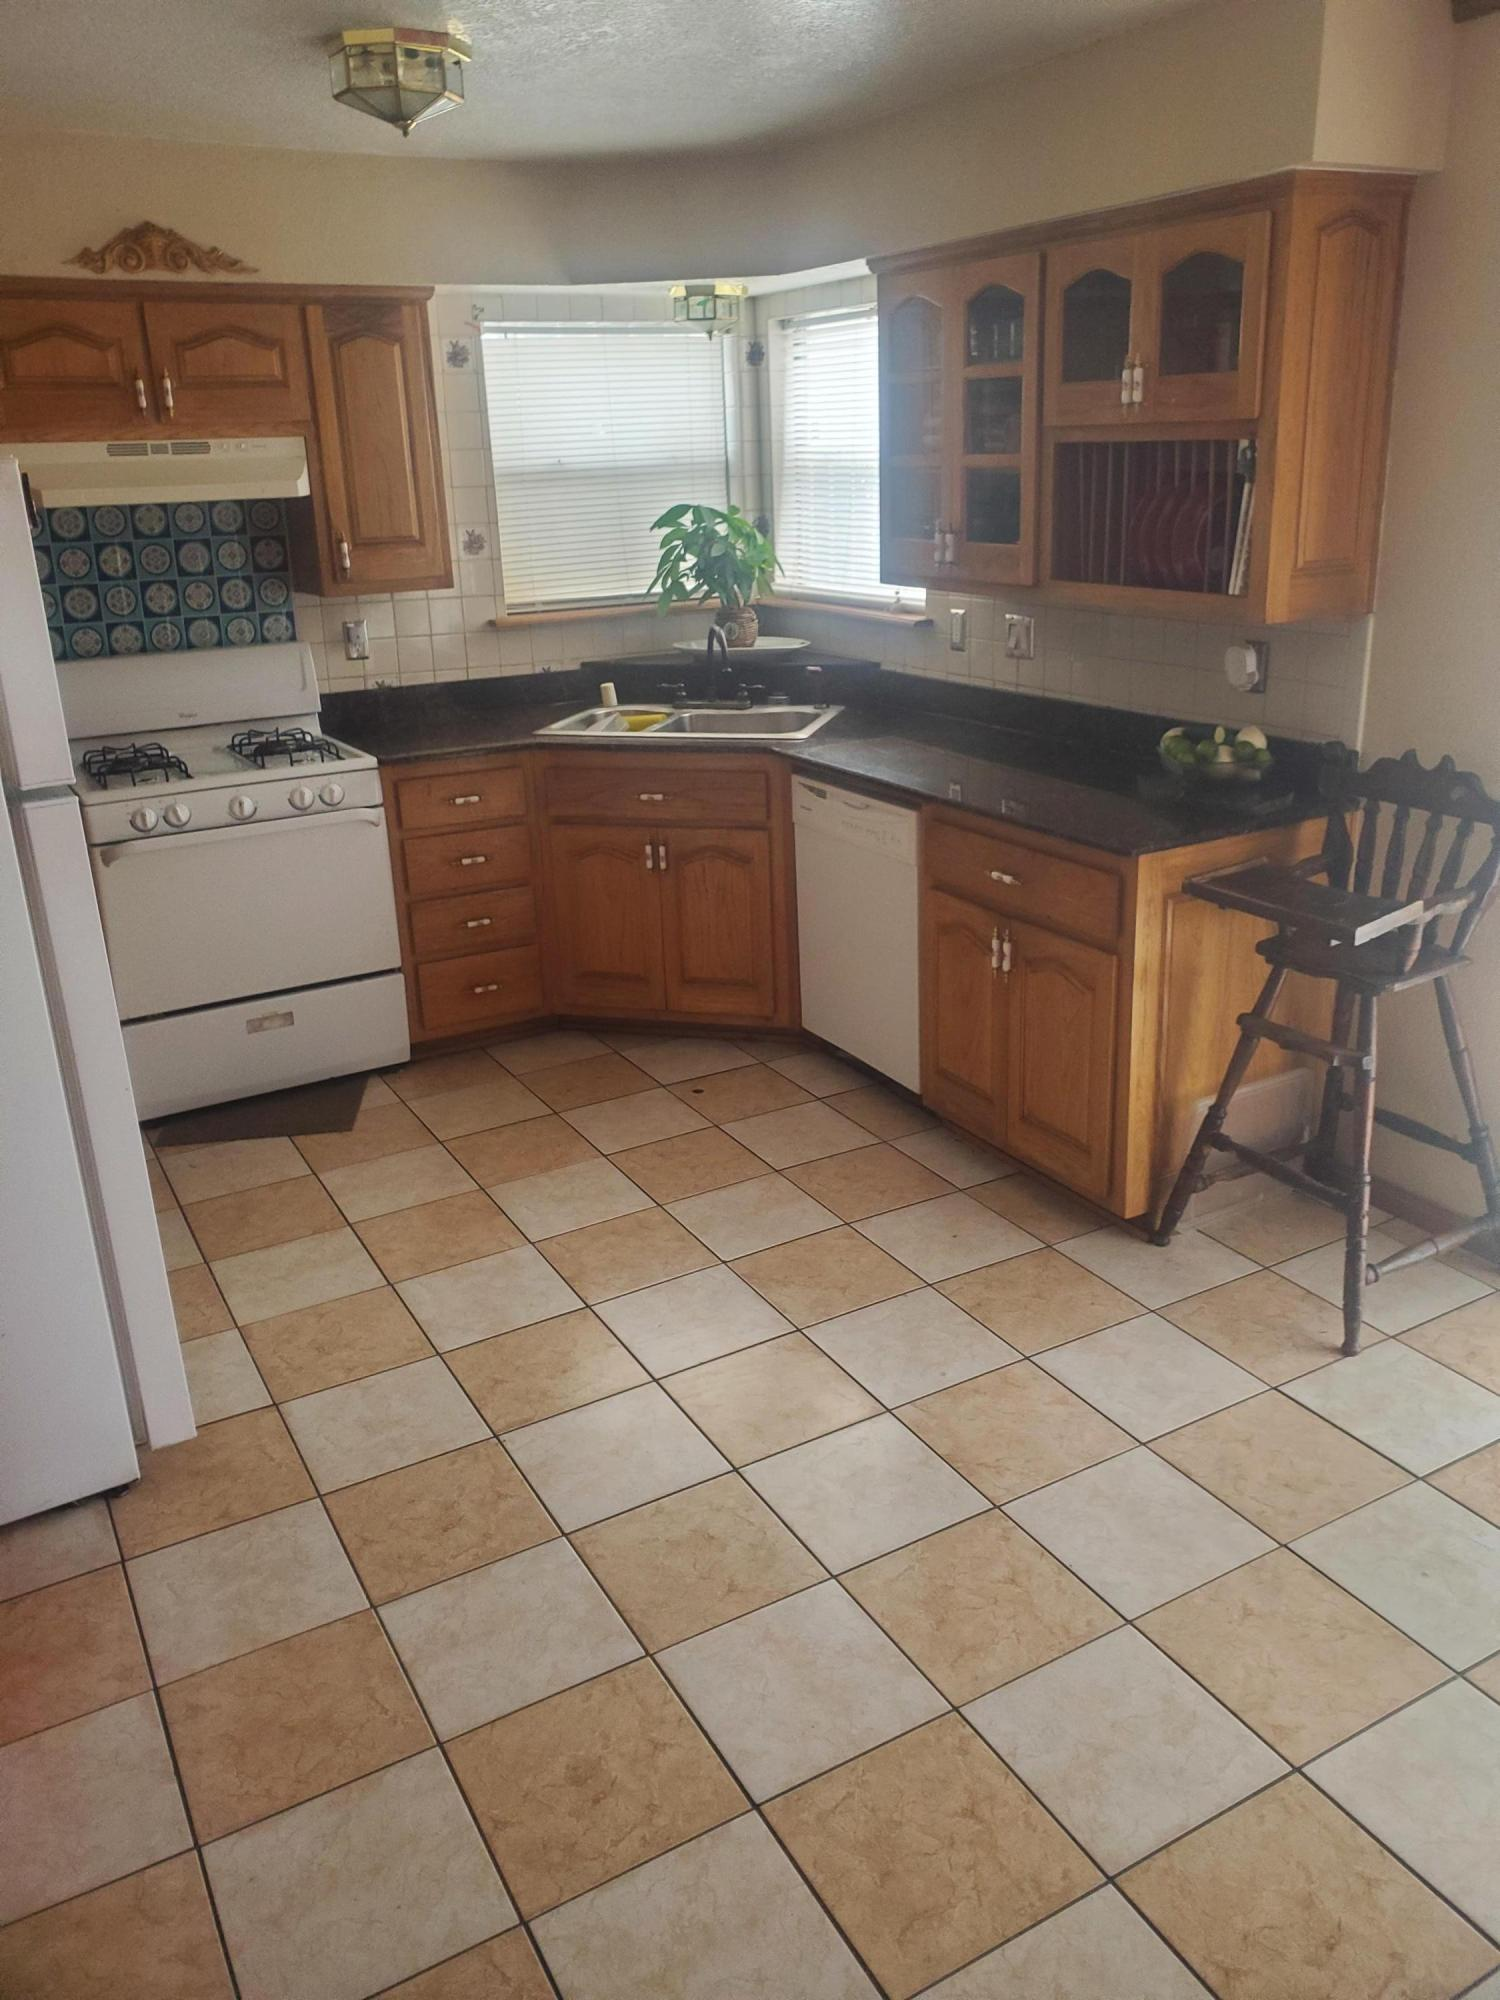 Newer roof ,Newer swamp cooler.Granite countertops,crown molding throughout the house,tile in the wet areas,Backyard access.Give 30 minutes prior to showing.Showing between 1pm and 7pm only